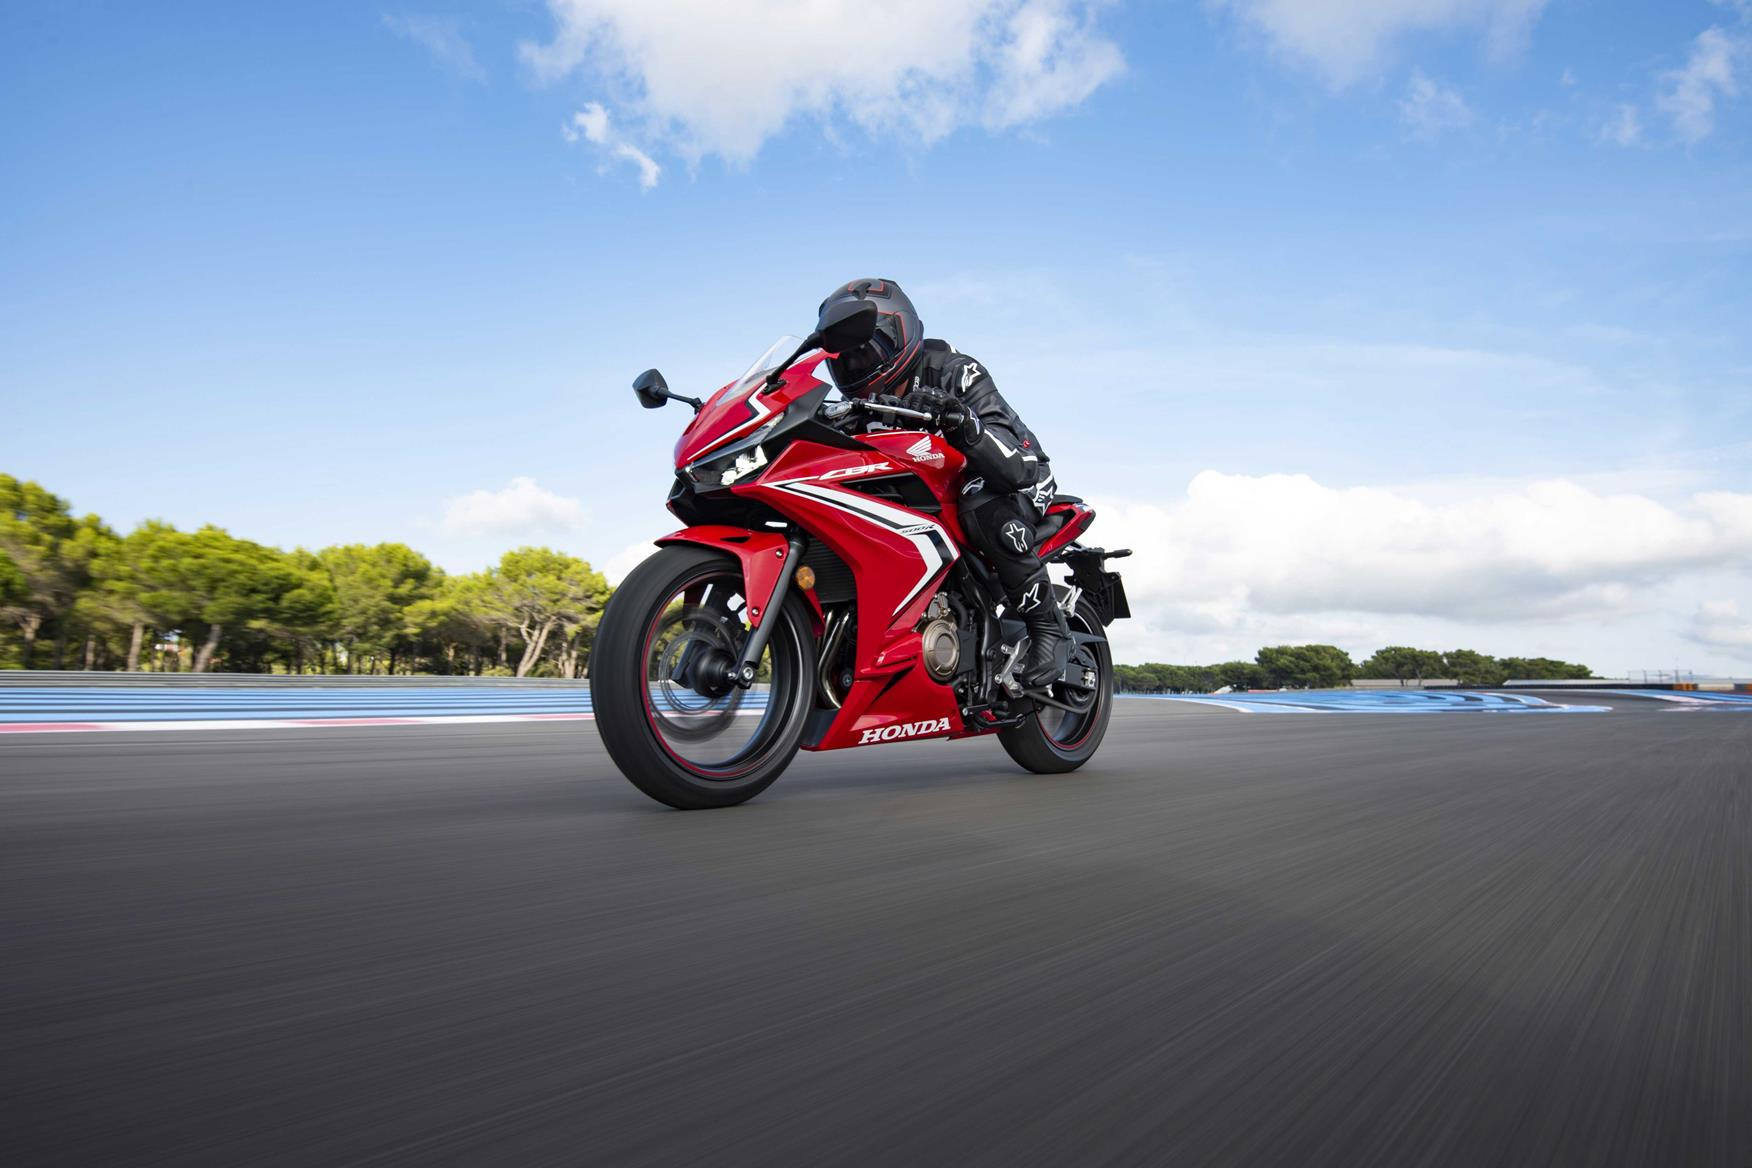 Honda CBR500R looks good and is capable in all conditions